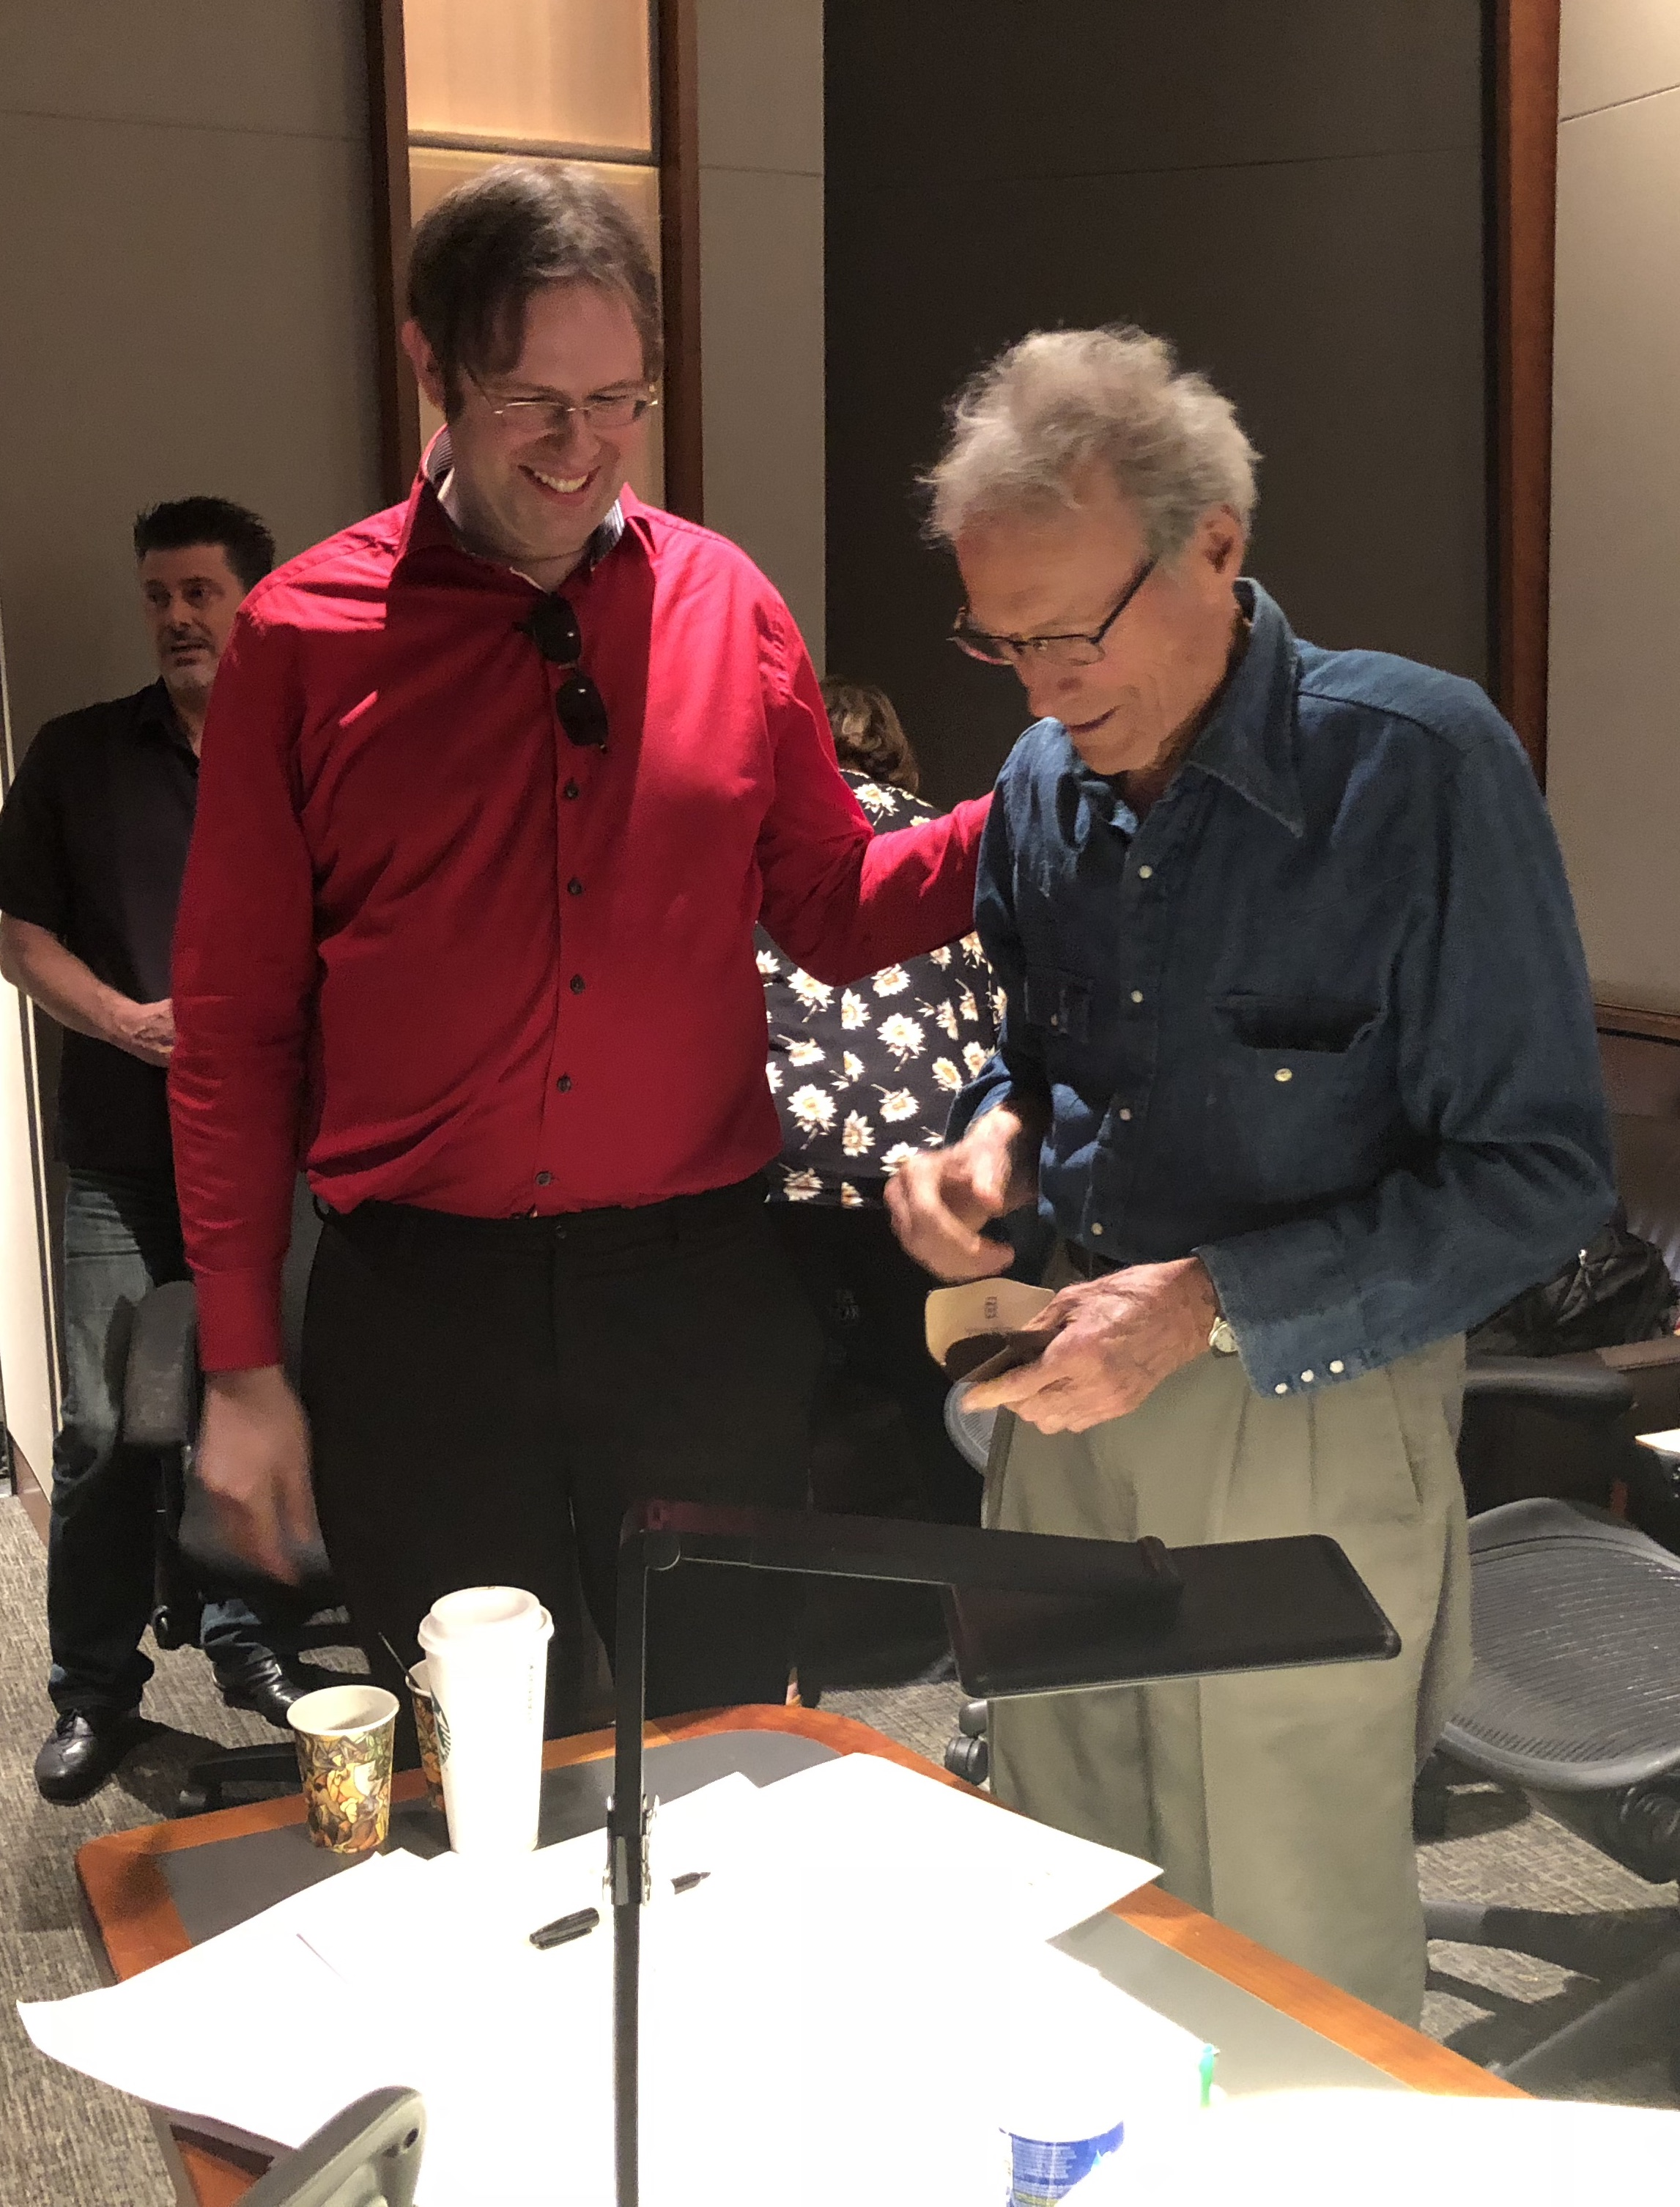 """Kaska with Clint Eastwood at """"The Mule"""" session"""